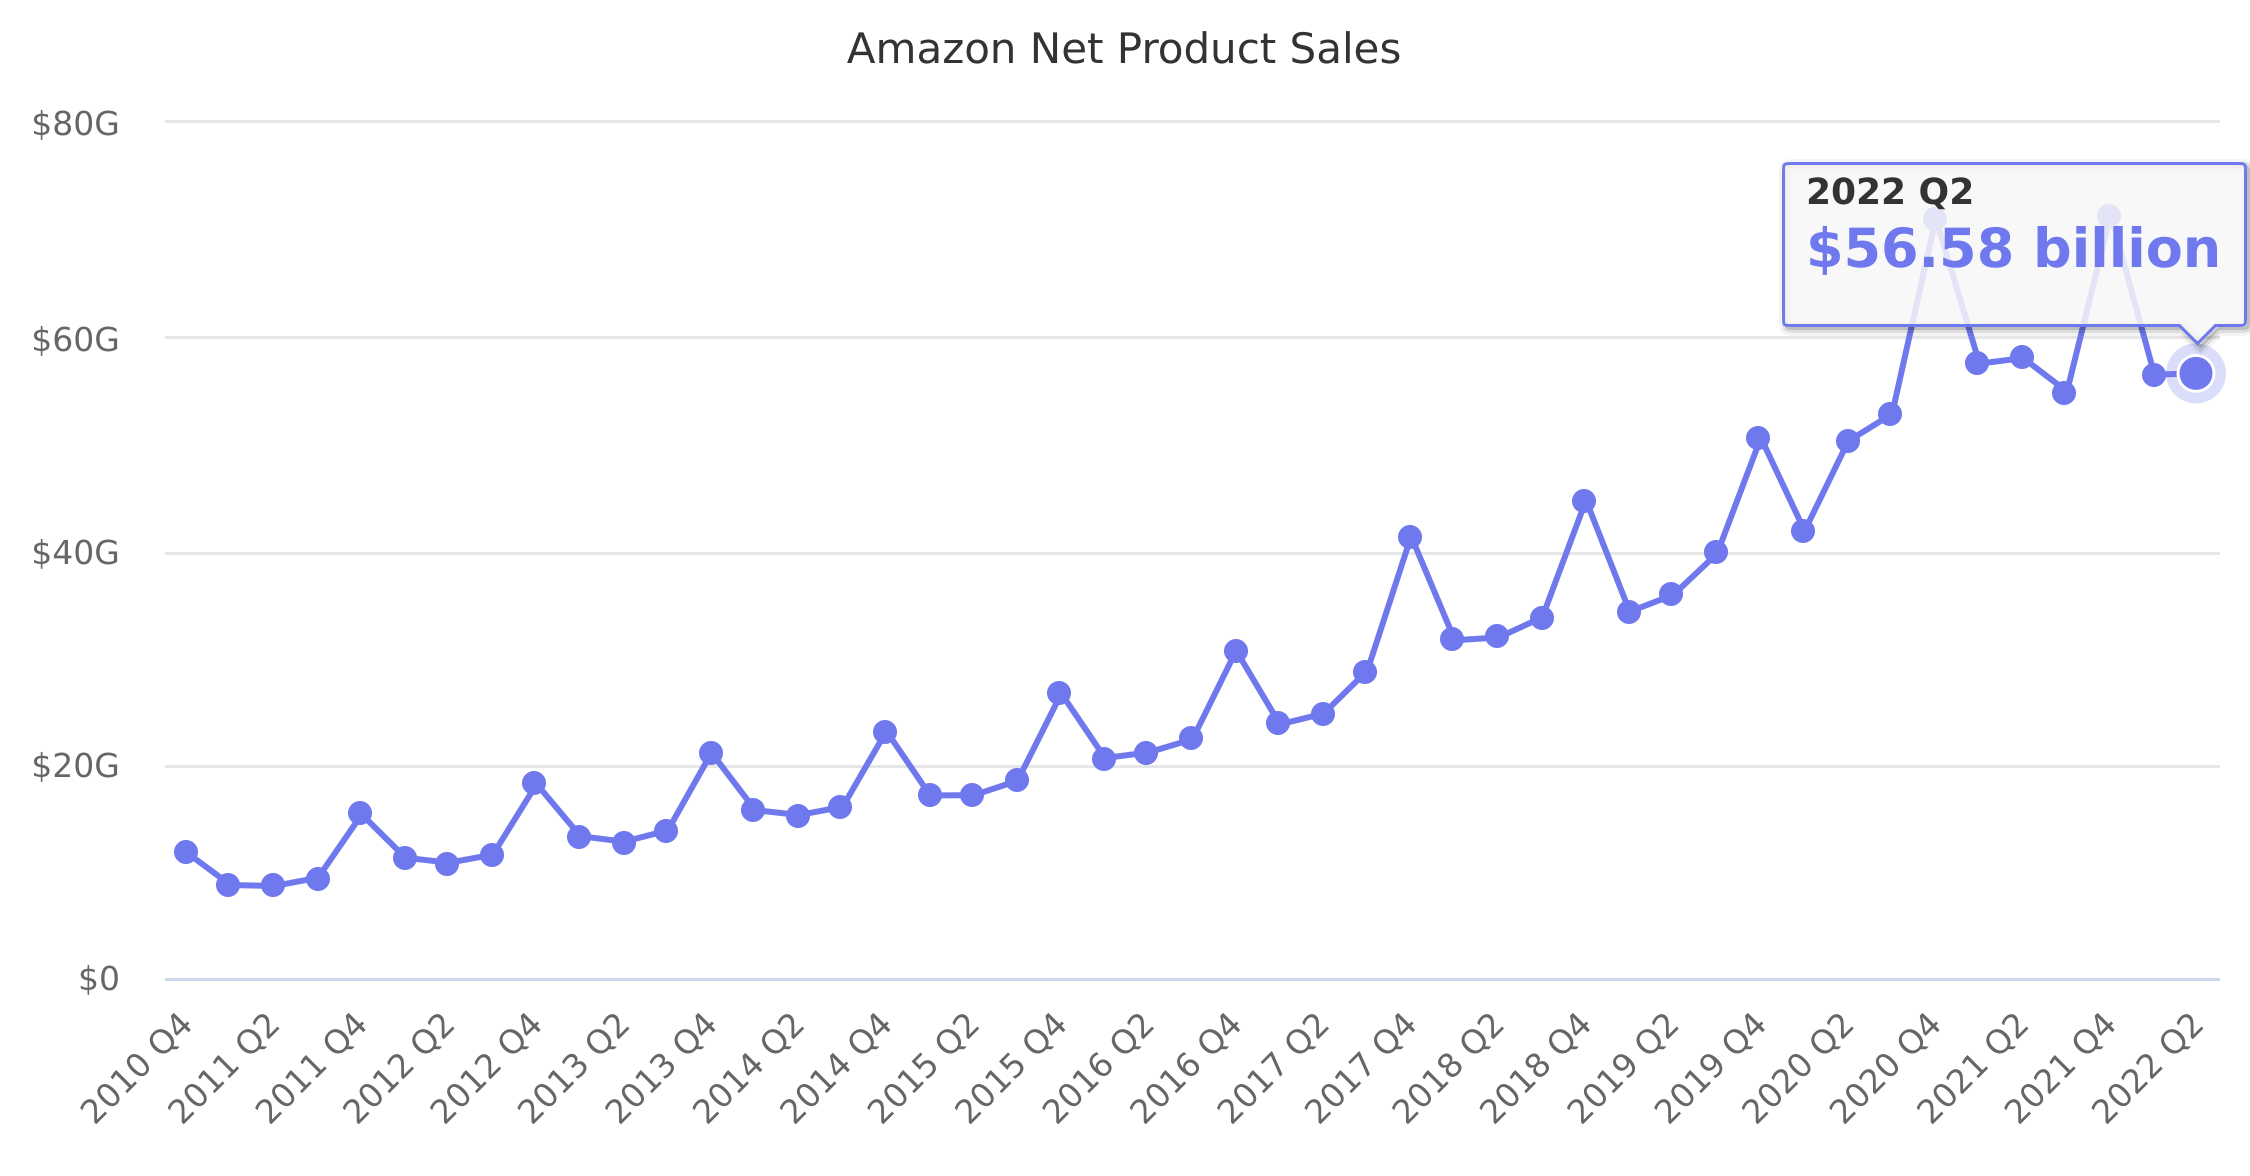 Amazon Net Product Sales 2010-2019